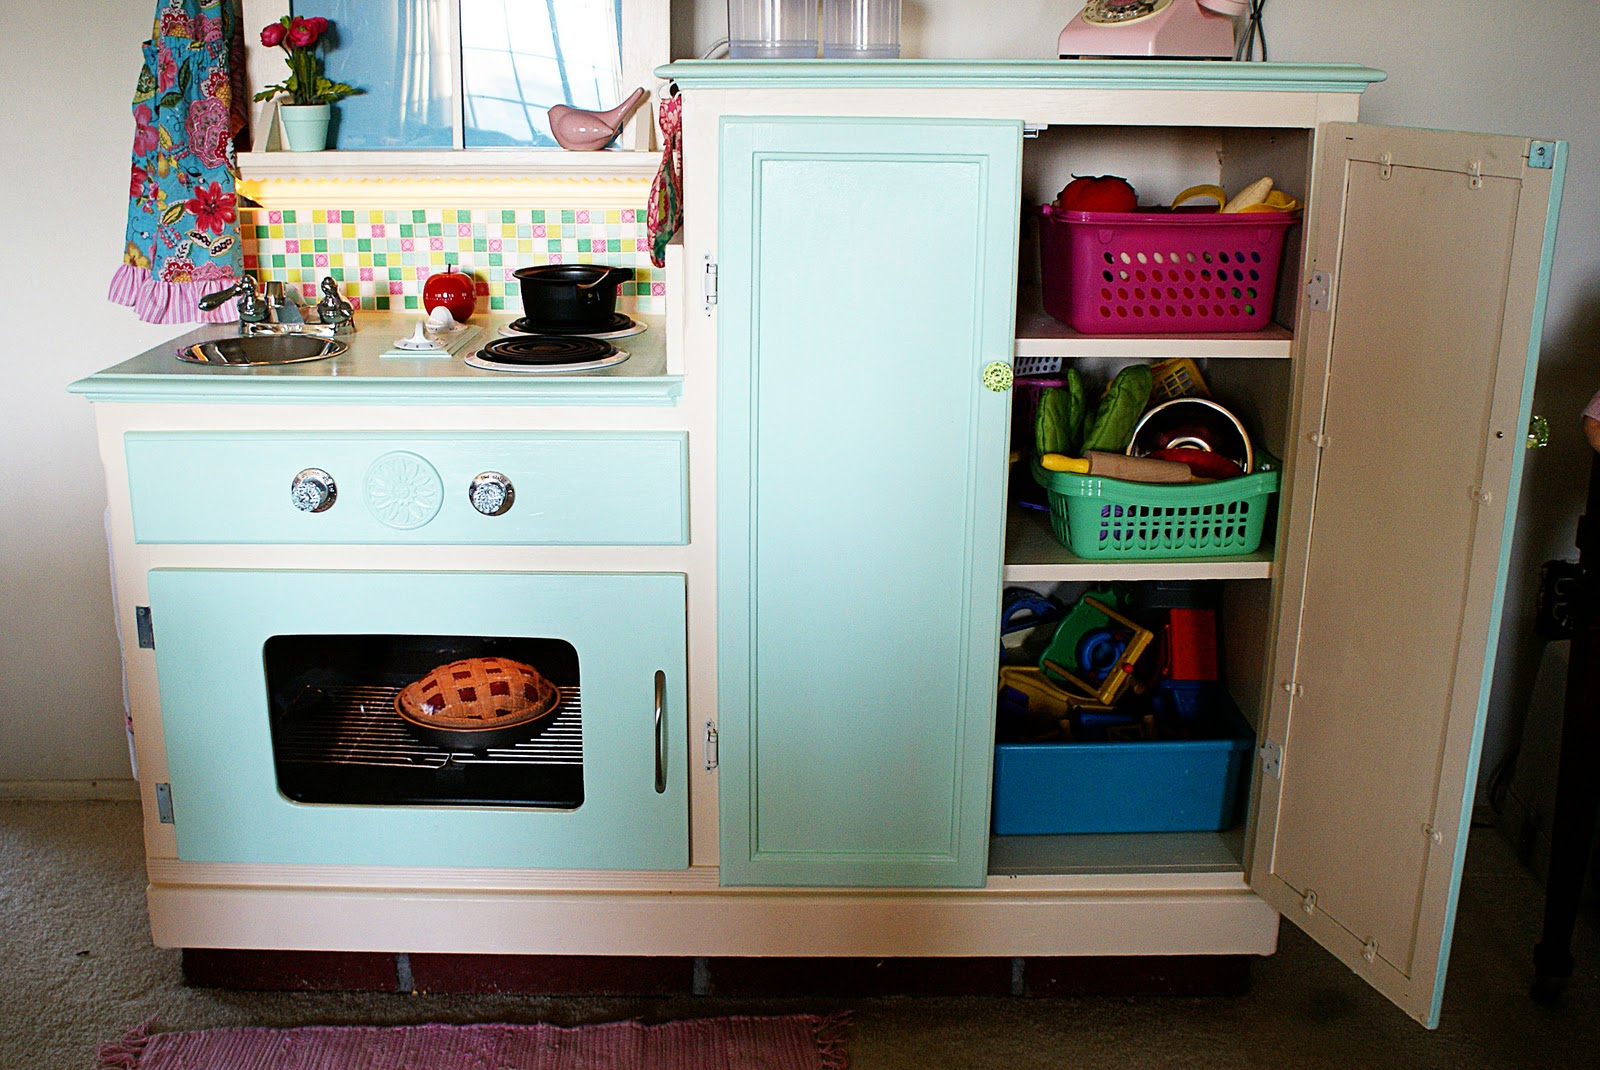 Easy Peasy Pie: Play Kitchen